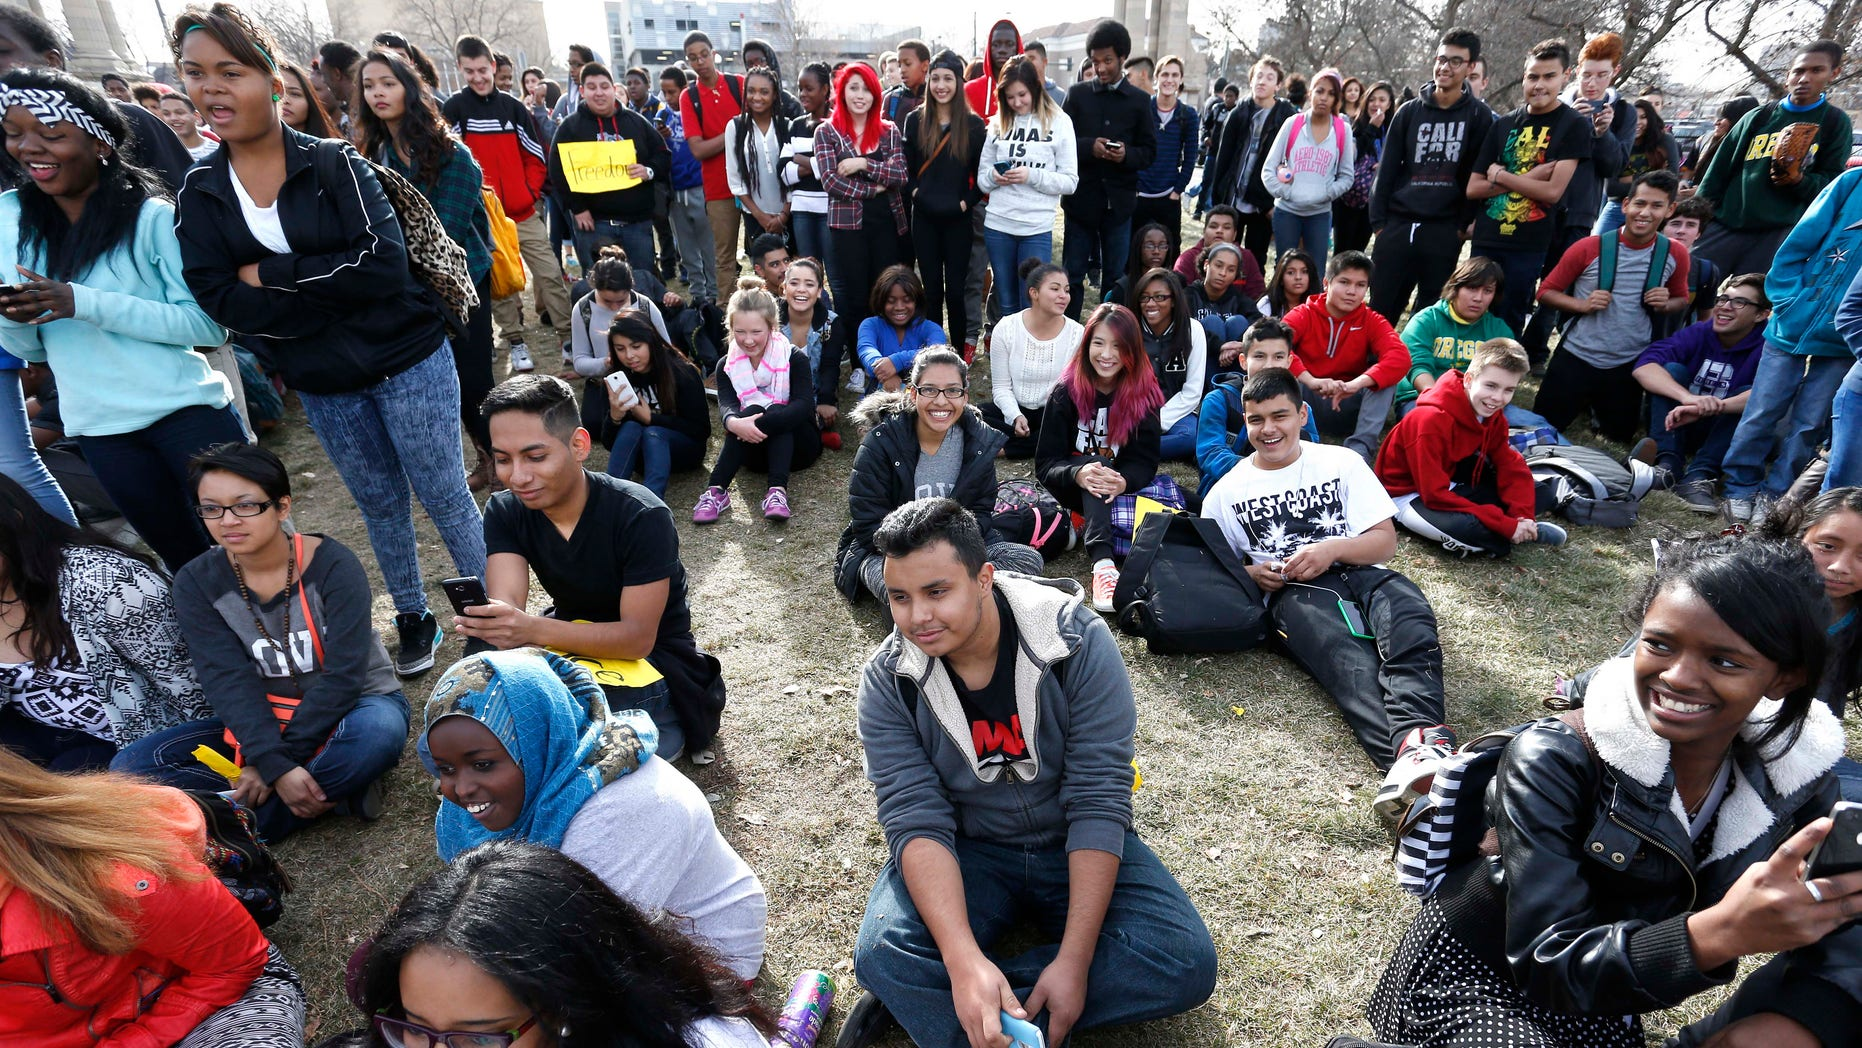 Dec. 8, 2014: South High students and supporters participate in a protest against recent grand jury decisions not to indict police officers in the killings of unarmed men, in front of East High, in Denver